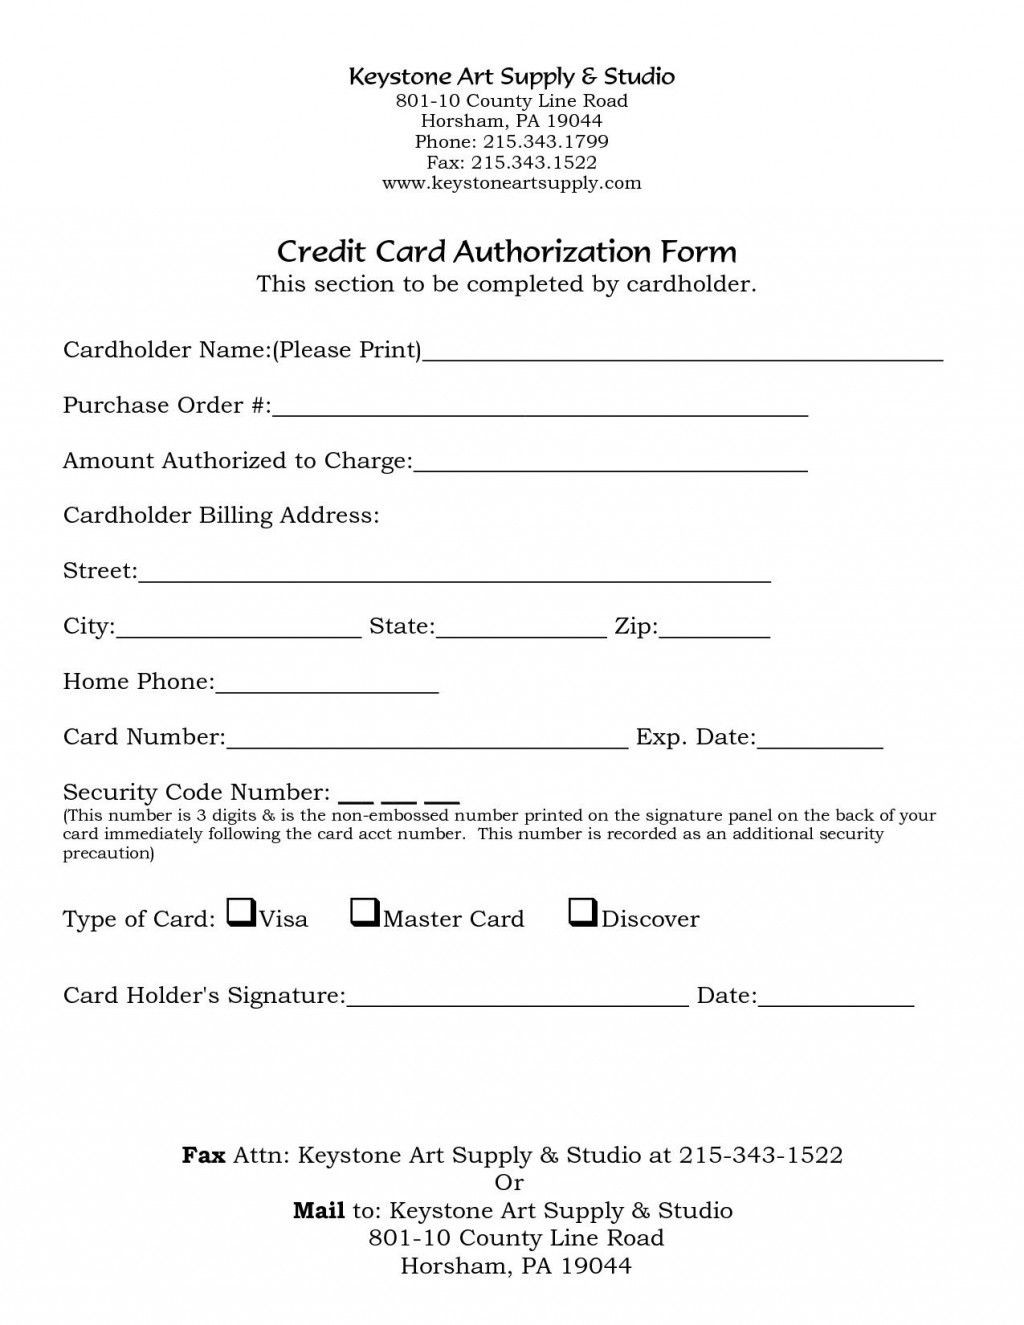 000 Fascinating One Time Credit Card Payment Authorization Form Template High Def Large